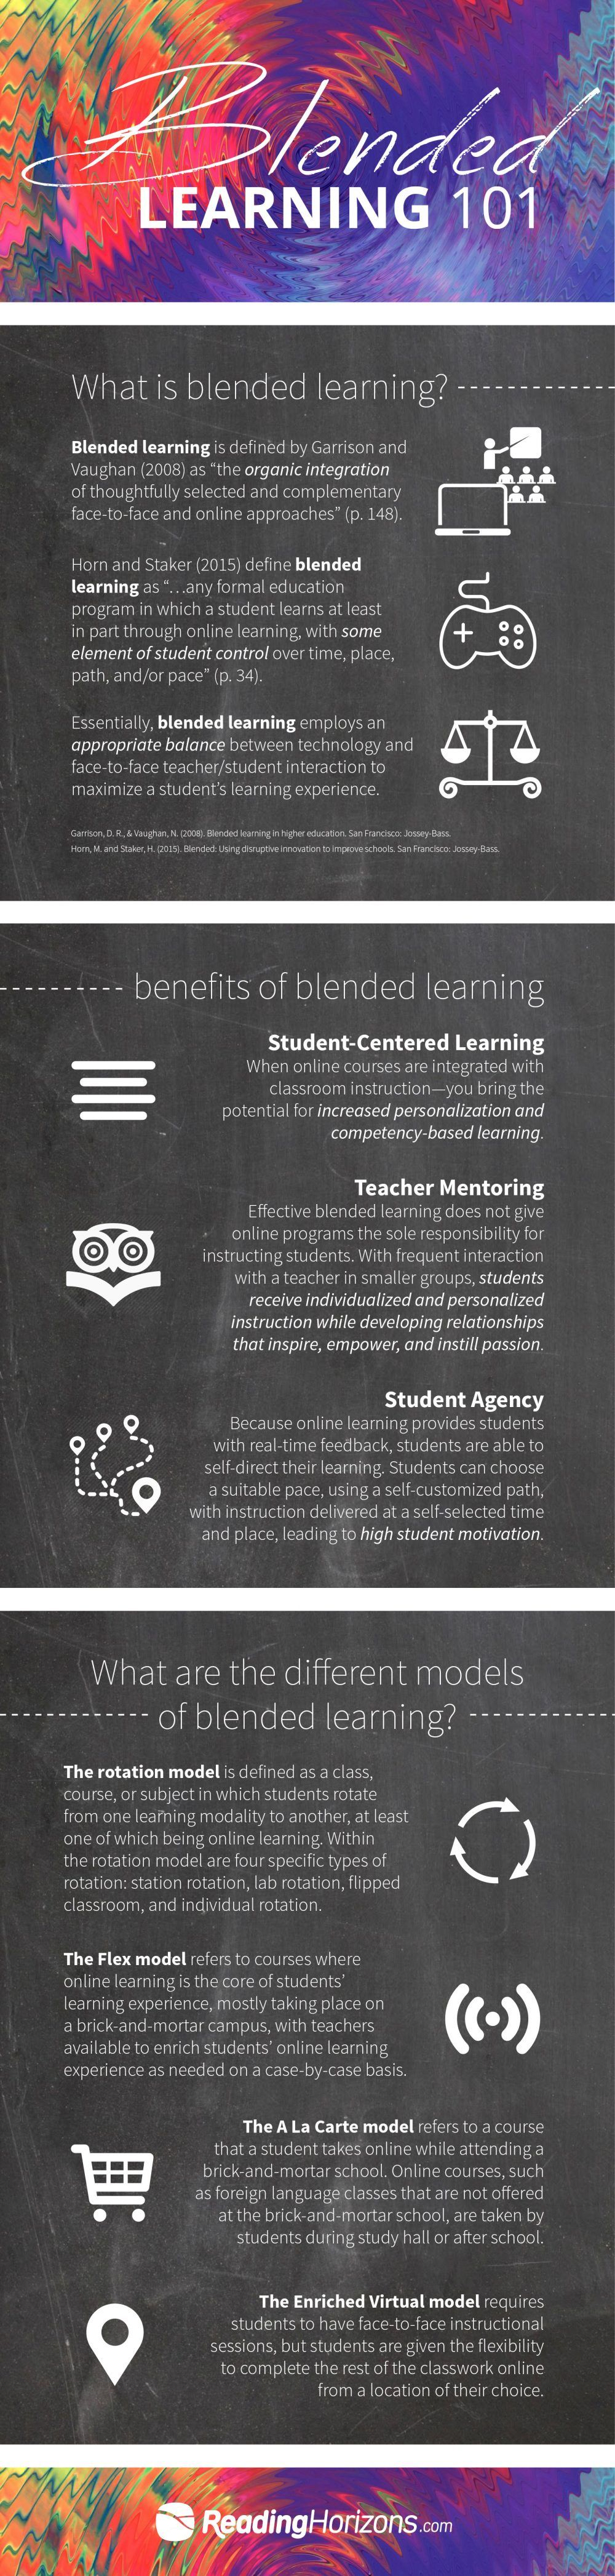 Accommodating learning styles in instructional design